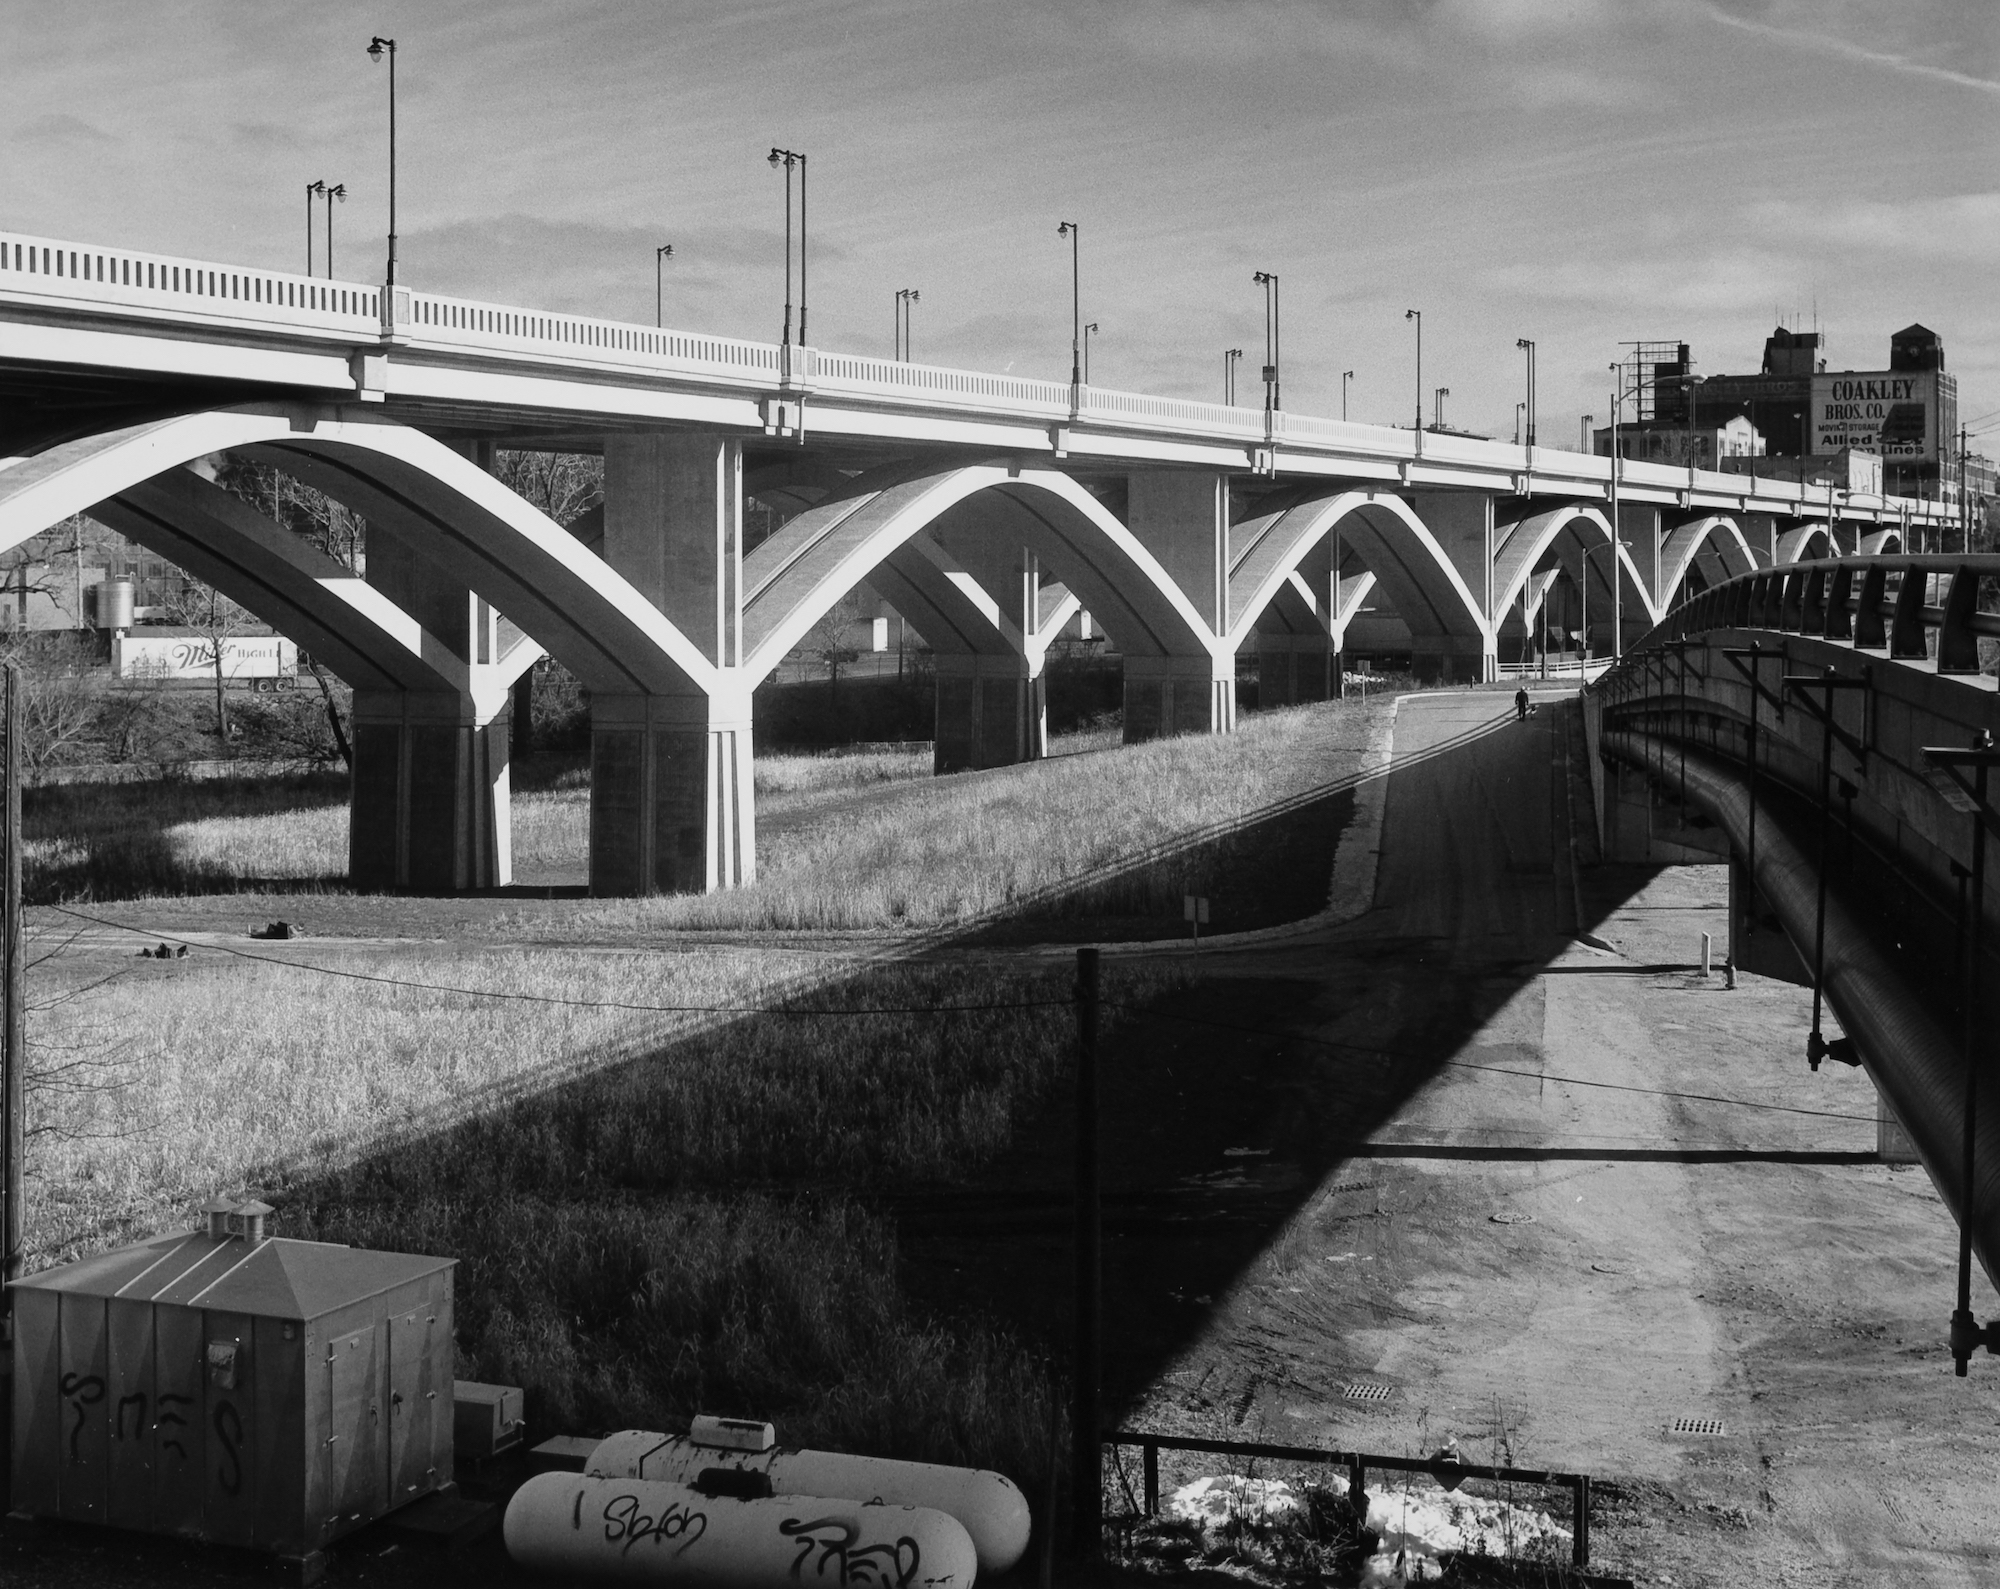 The new Wisconsin Avenue viaduct in 1994, with grass growing underneath it.